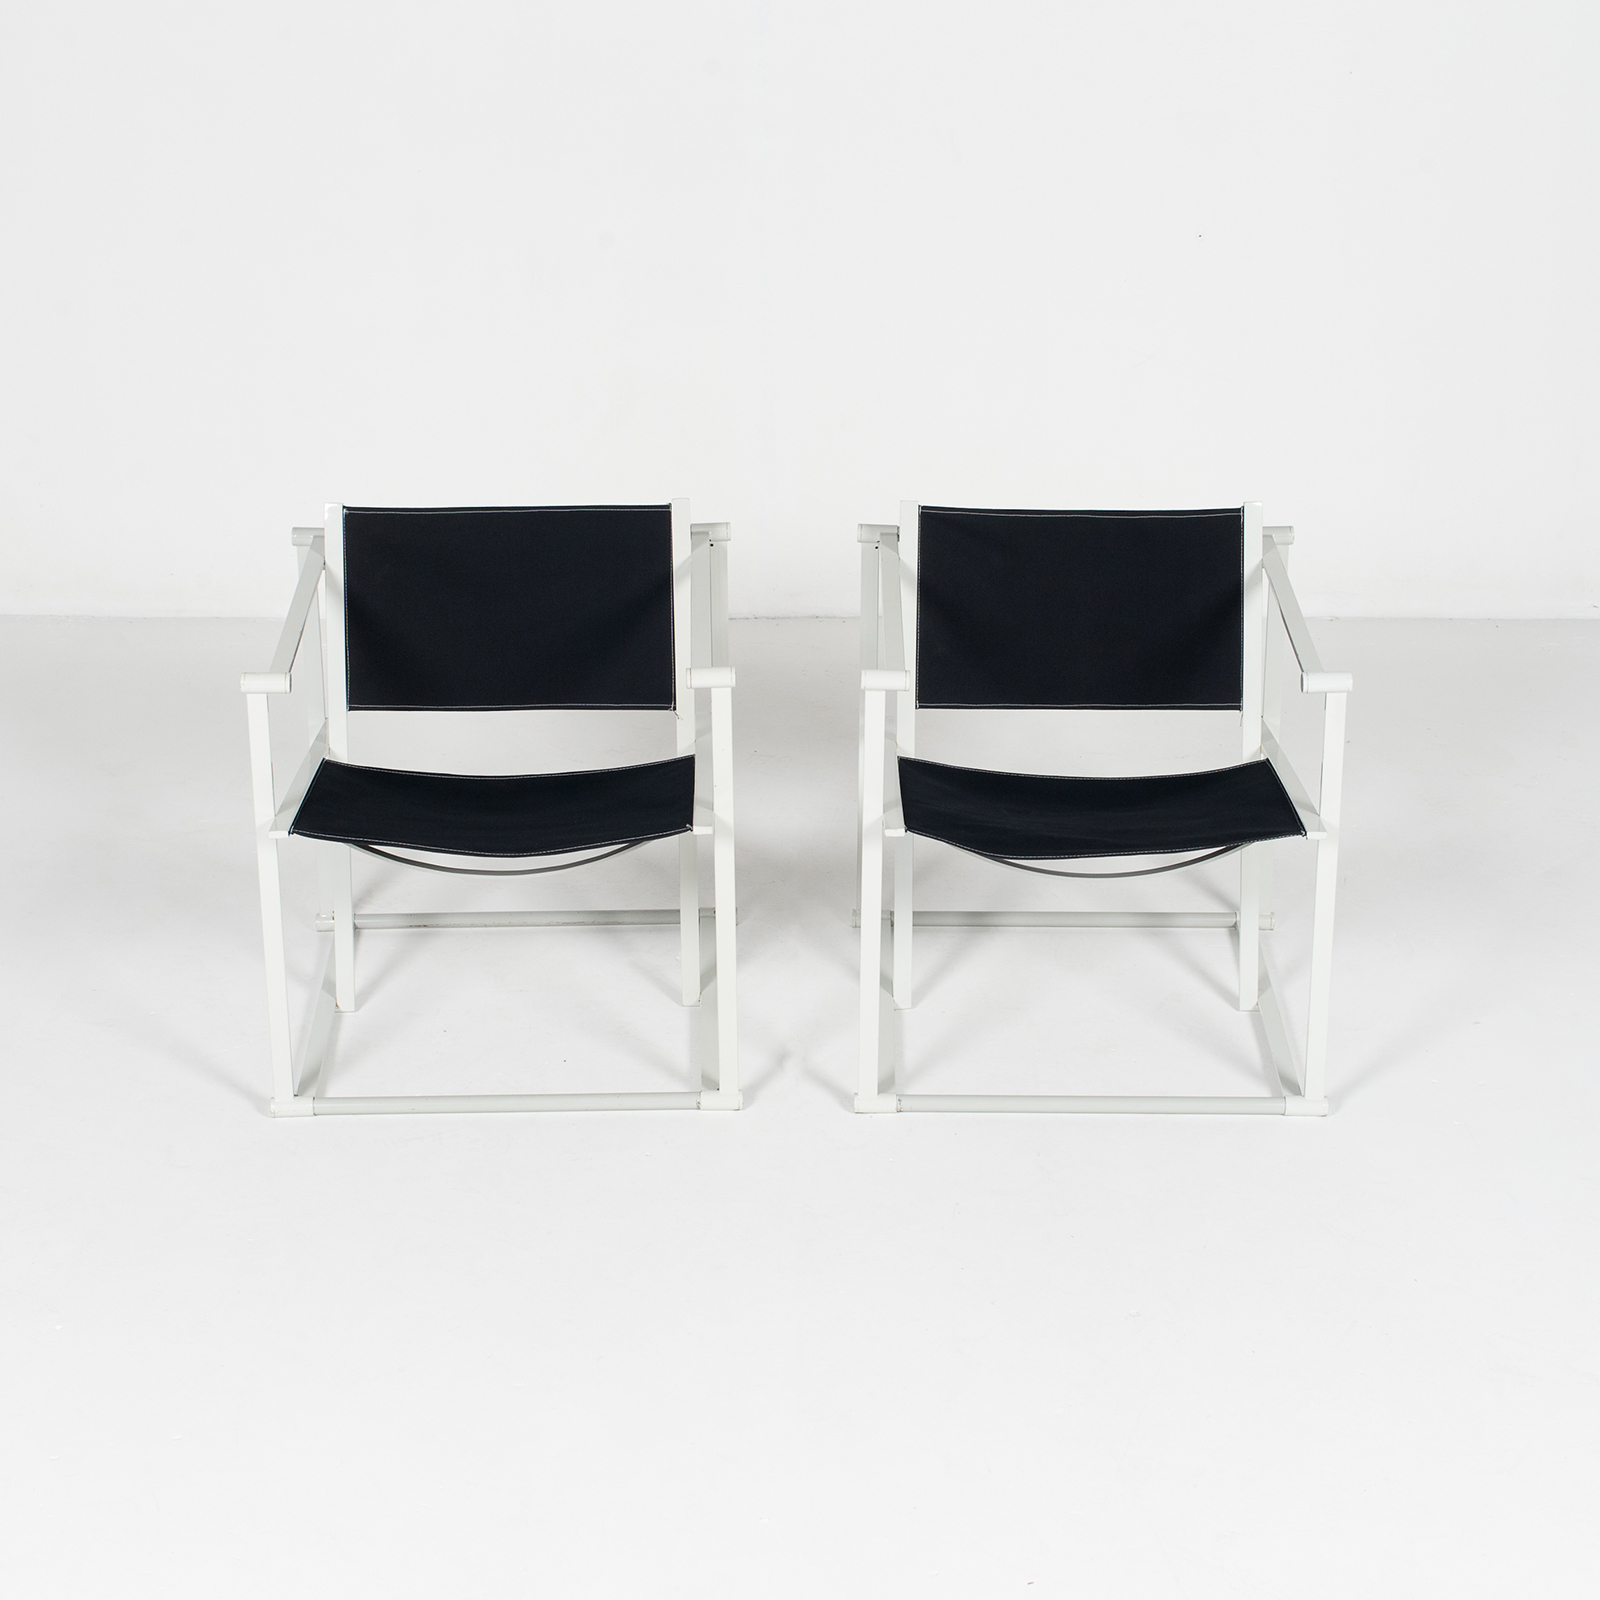 Model Fm60 Cubic Chair By Radboud Van Beekum For Pastoe In Black Canvas And Grey Frame, 1980s, The Netherlands39